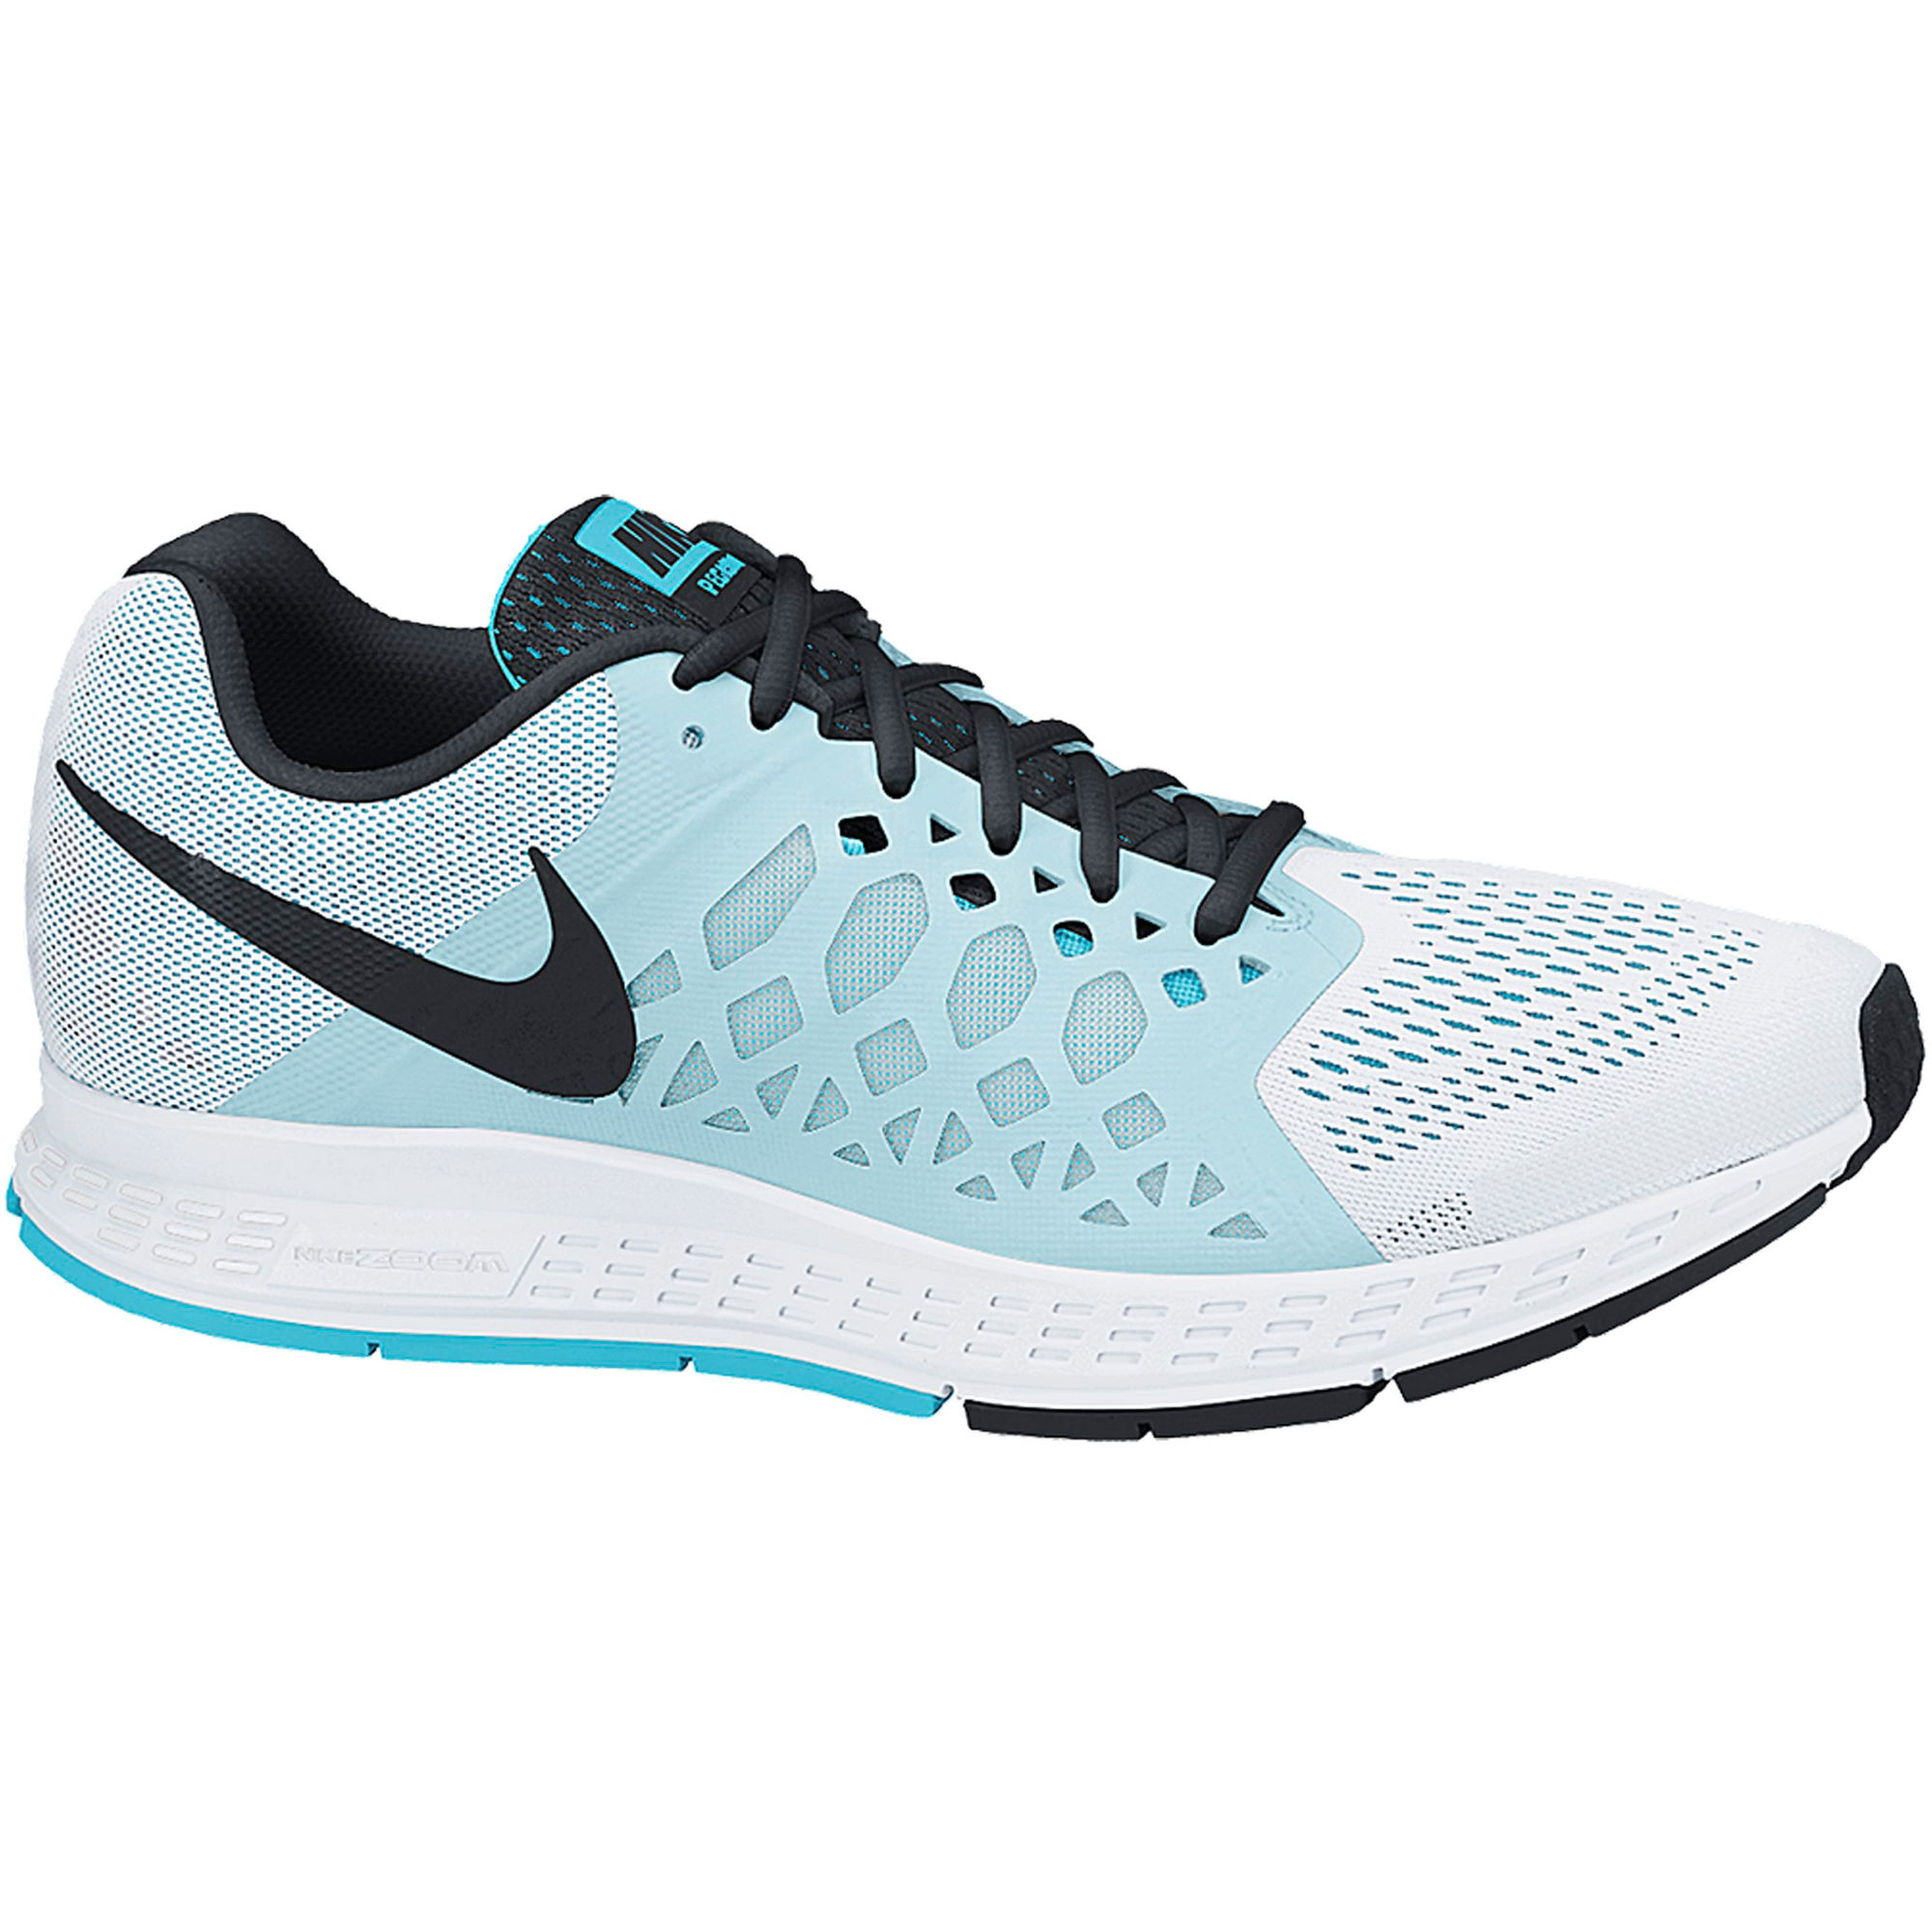 official photos d00c8 f4a00 Nike Zoom Pegasus 31 Mujer